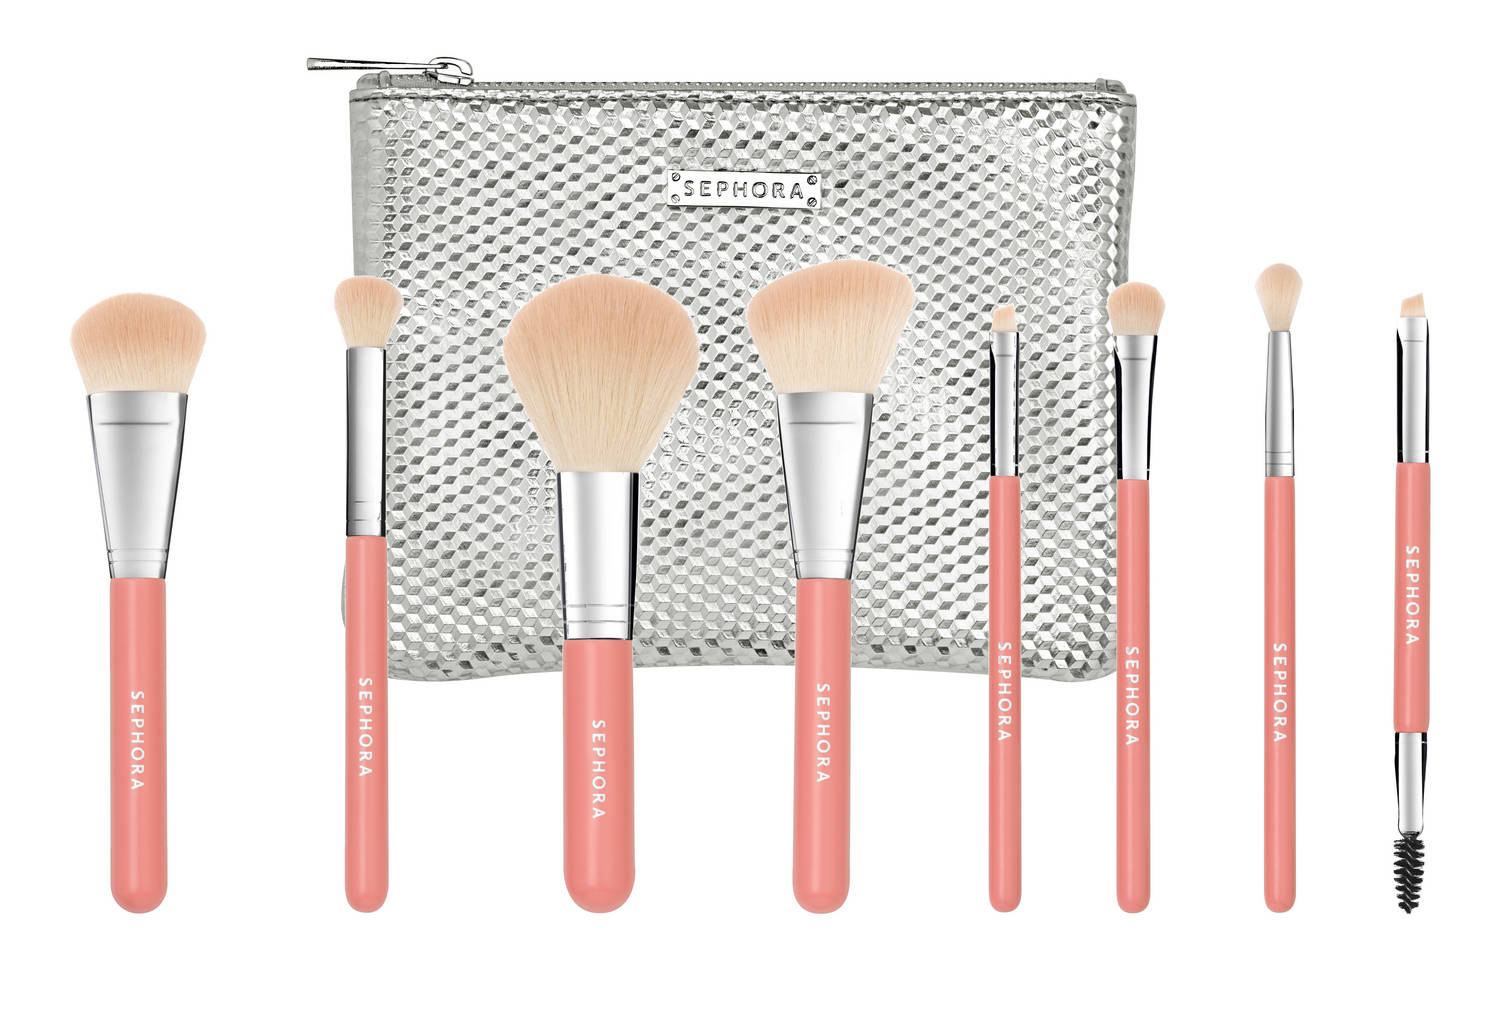 sephora pinceaux advanced brush set